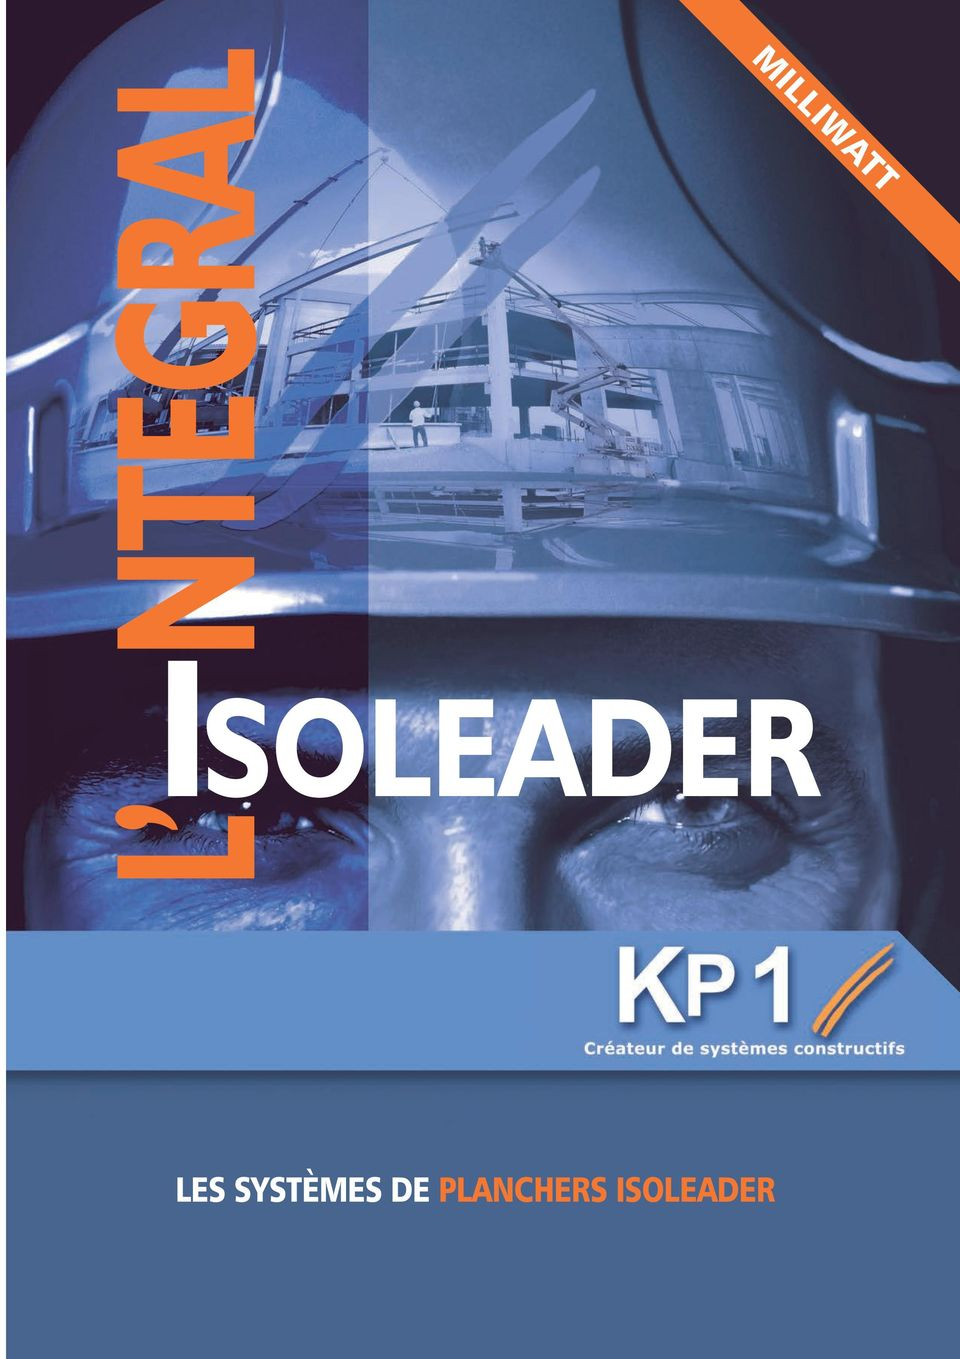 ISOLEADER LES